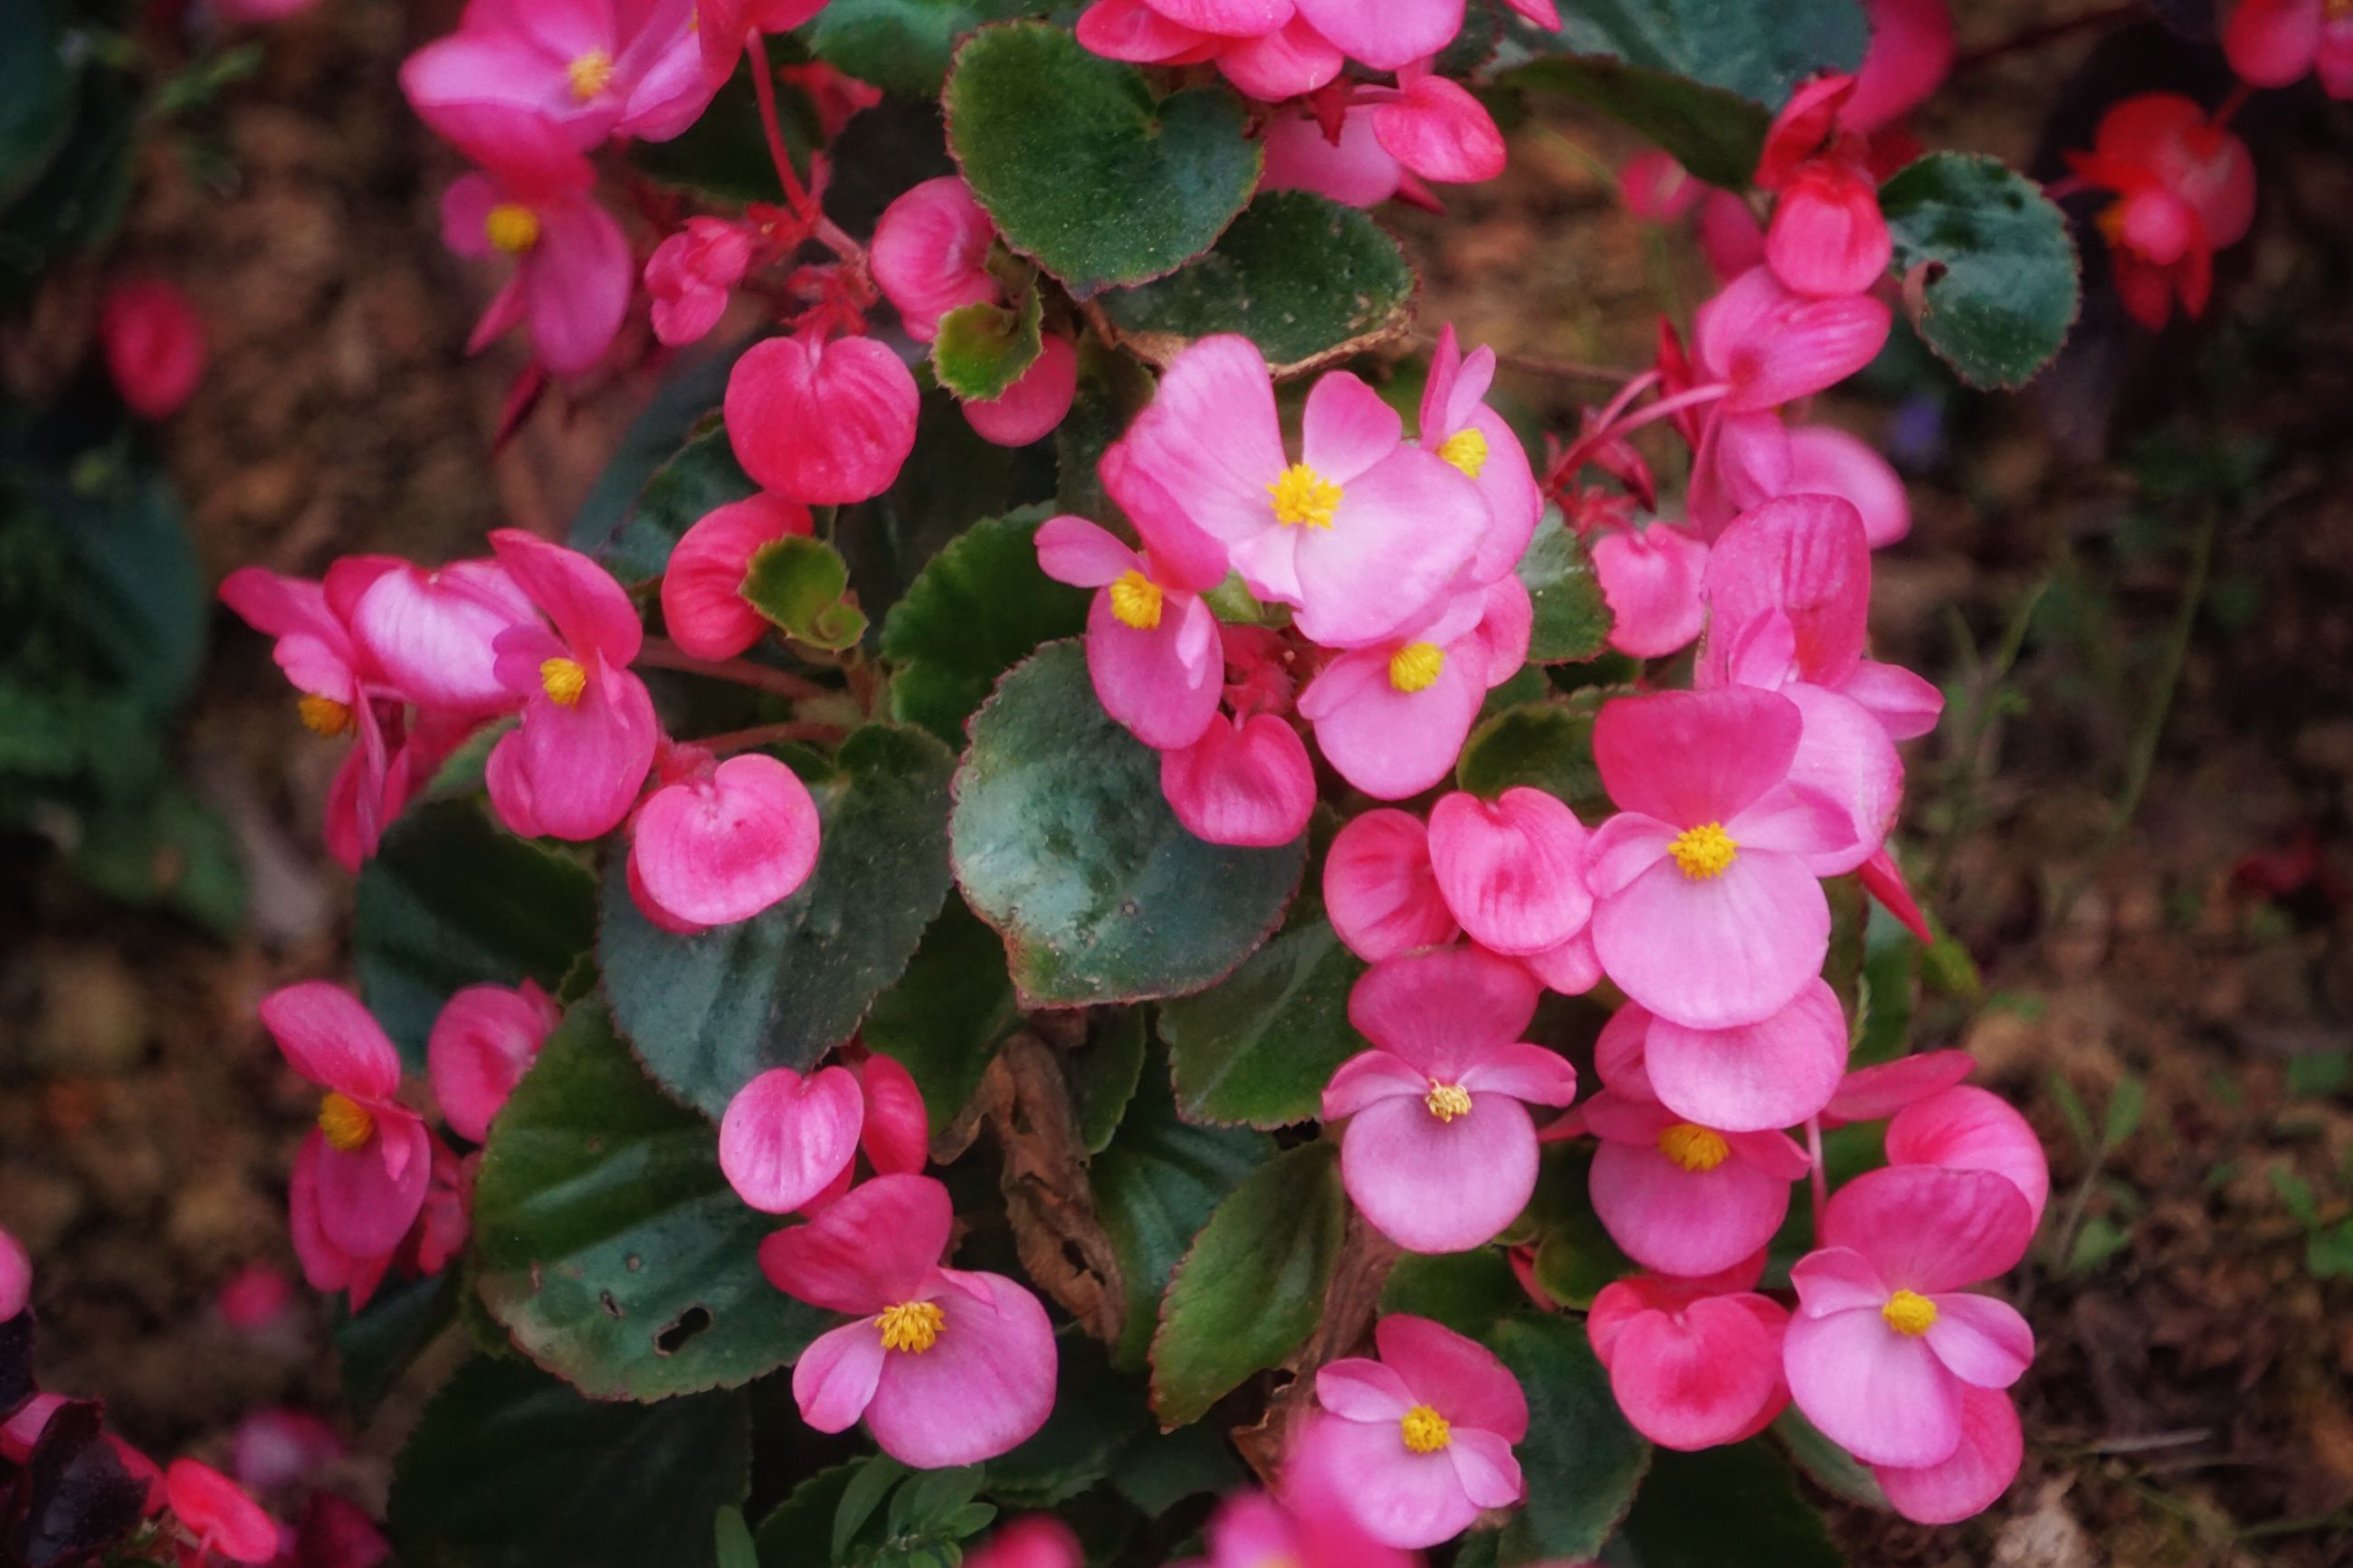 flower, freshness, pink color, petal, fragility, growth, beauty in nature, nature, flower head, close-up, blooming, plant, focus on foreground, in bloom, outdoors, day, no people, blossom, botany, selective focus, tranquility, growing, softness